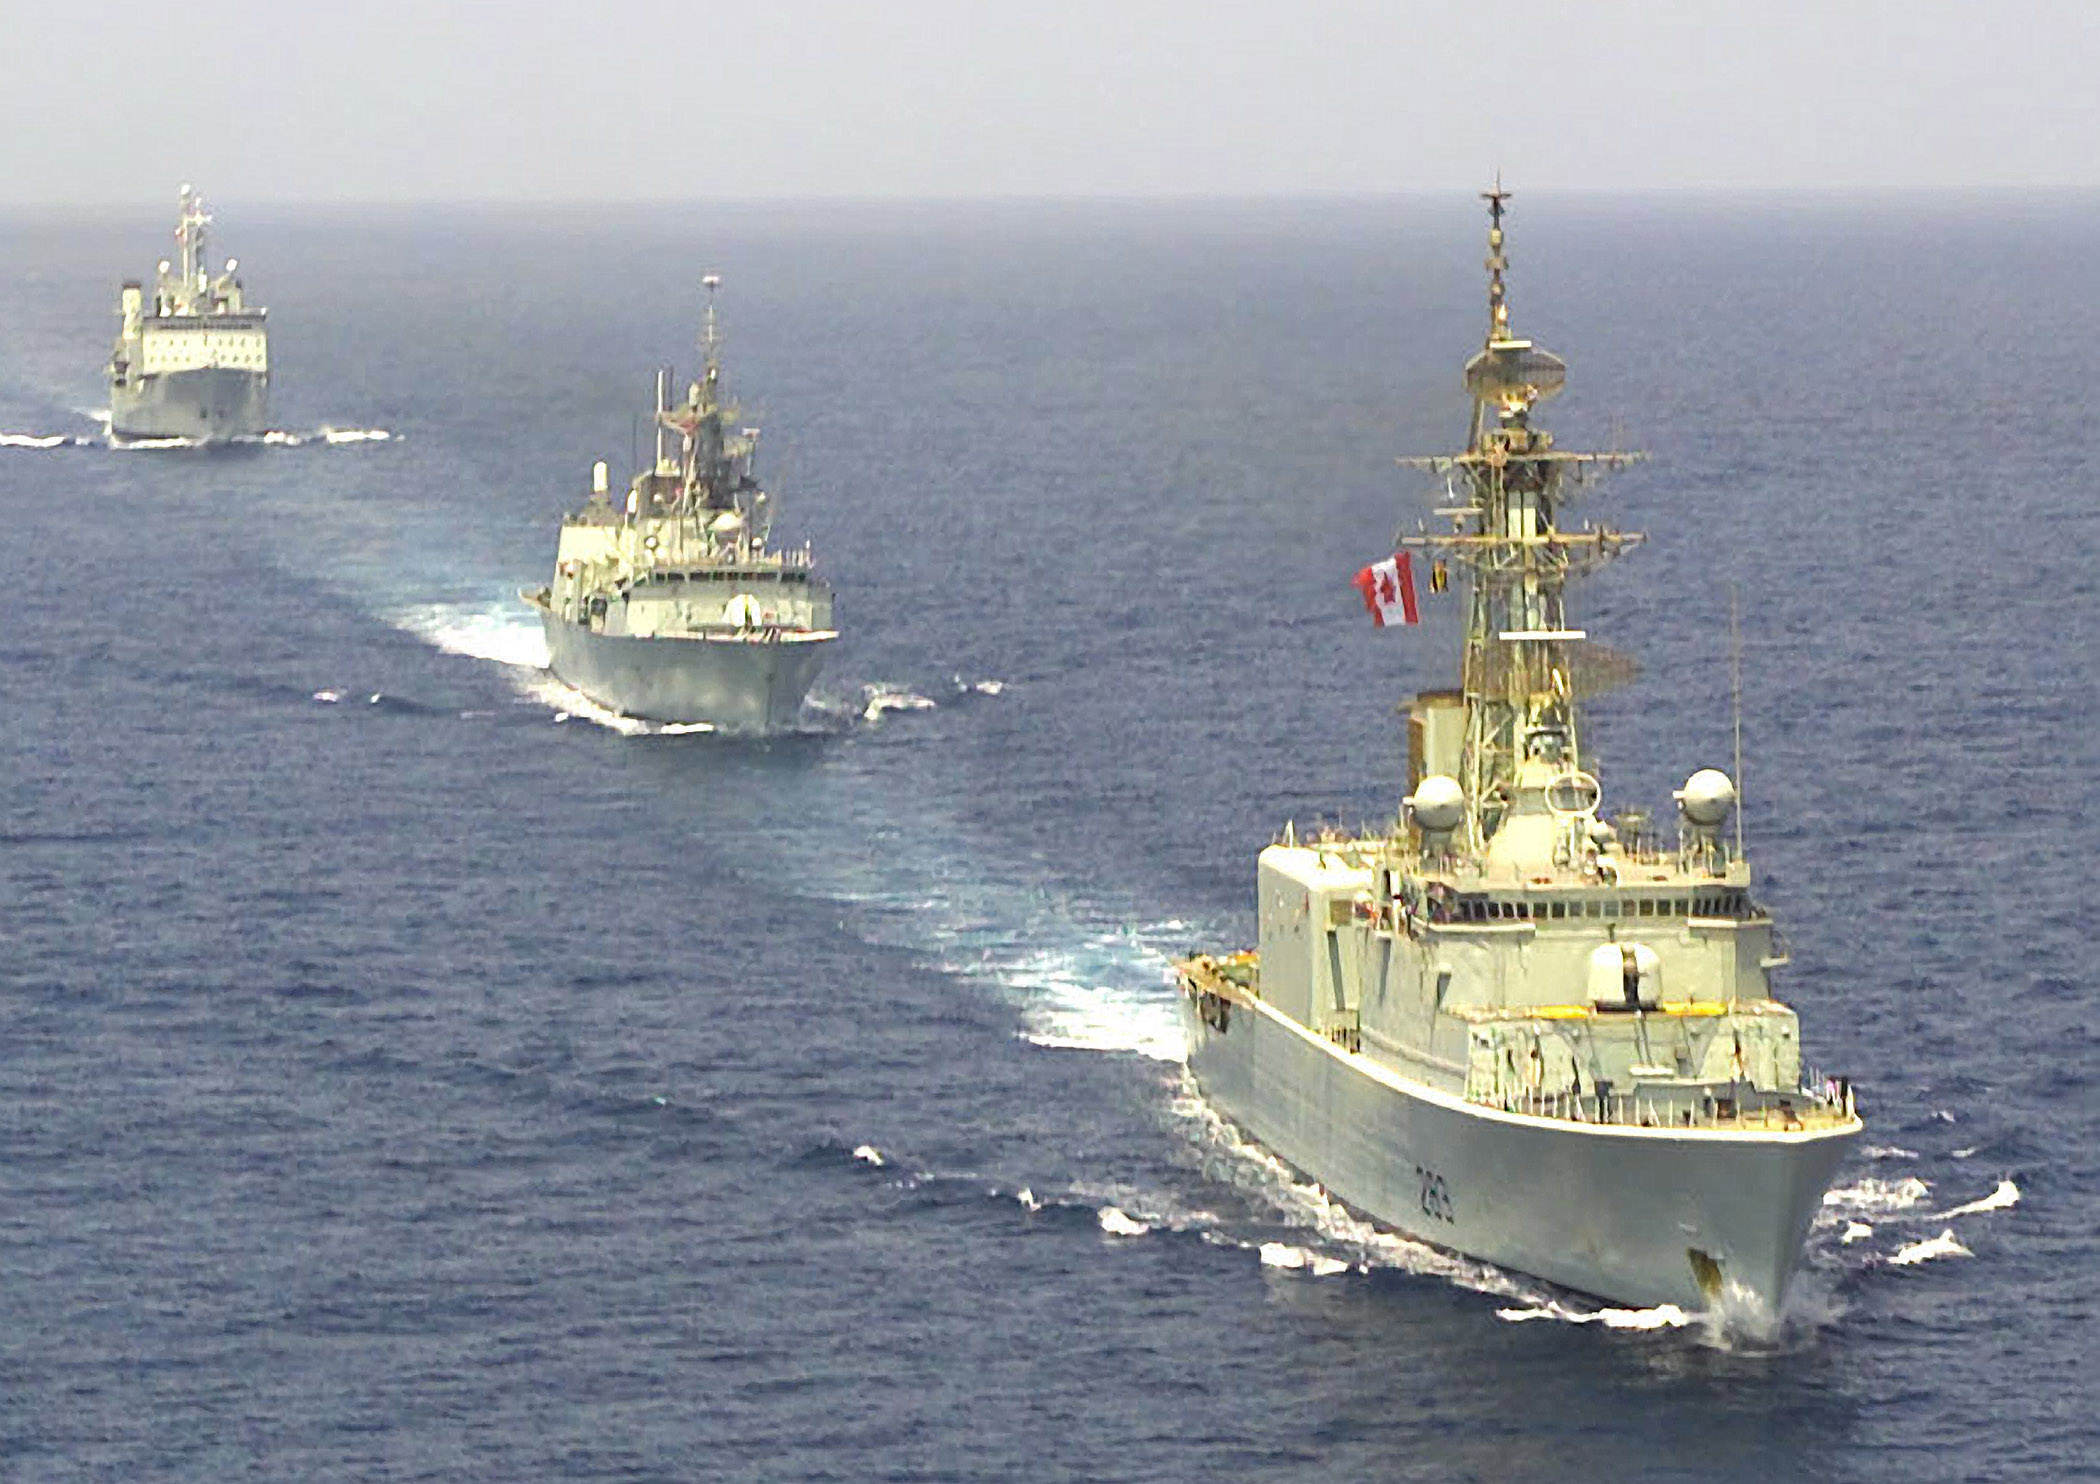 Diapositive - HMCS Algonquin, HMCS St-Johns and HMCS Protecteur in formation in the Gulf of Oman